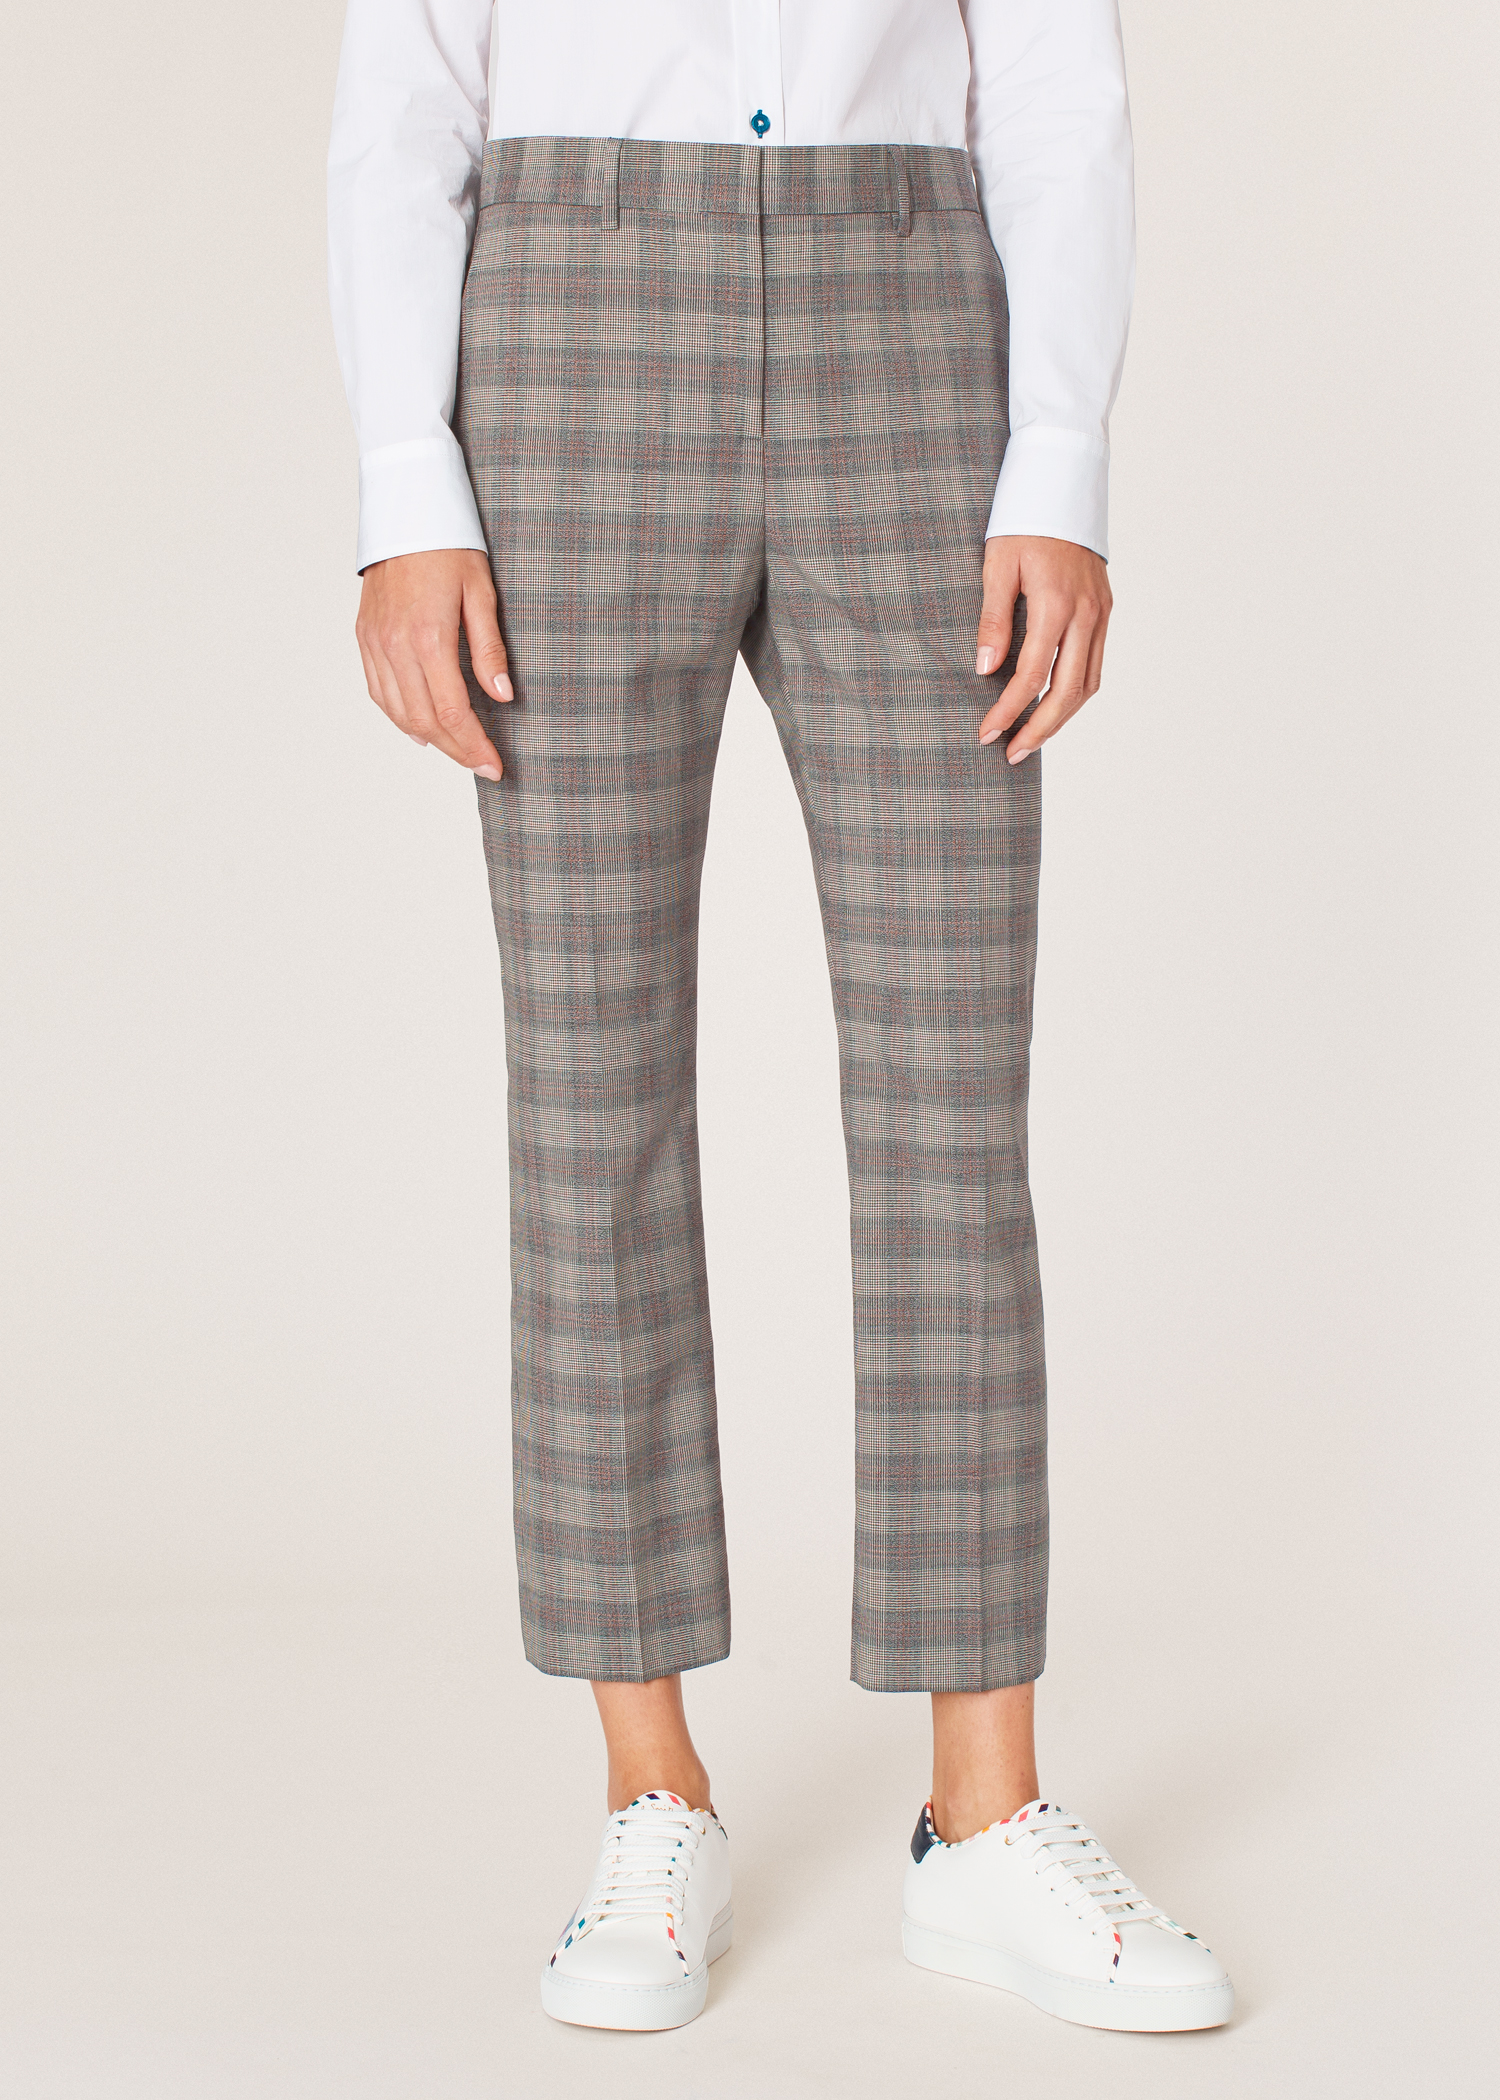 284fb02790 Model front close up - Women's Slim-Fit Grey And Orange Glen Plaid Wool  Trousers